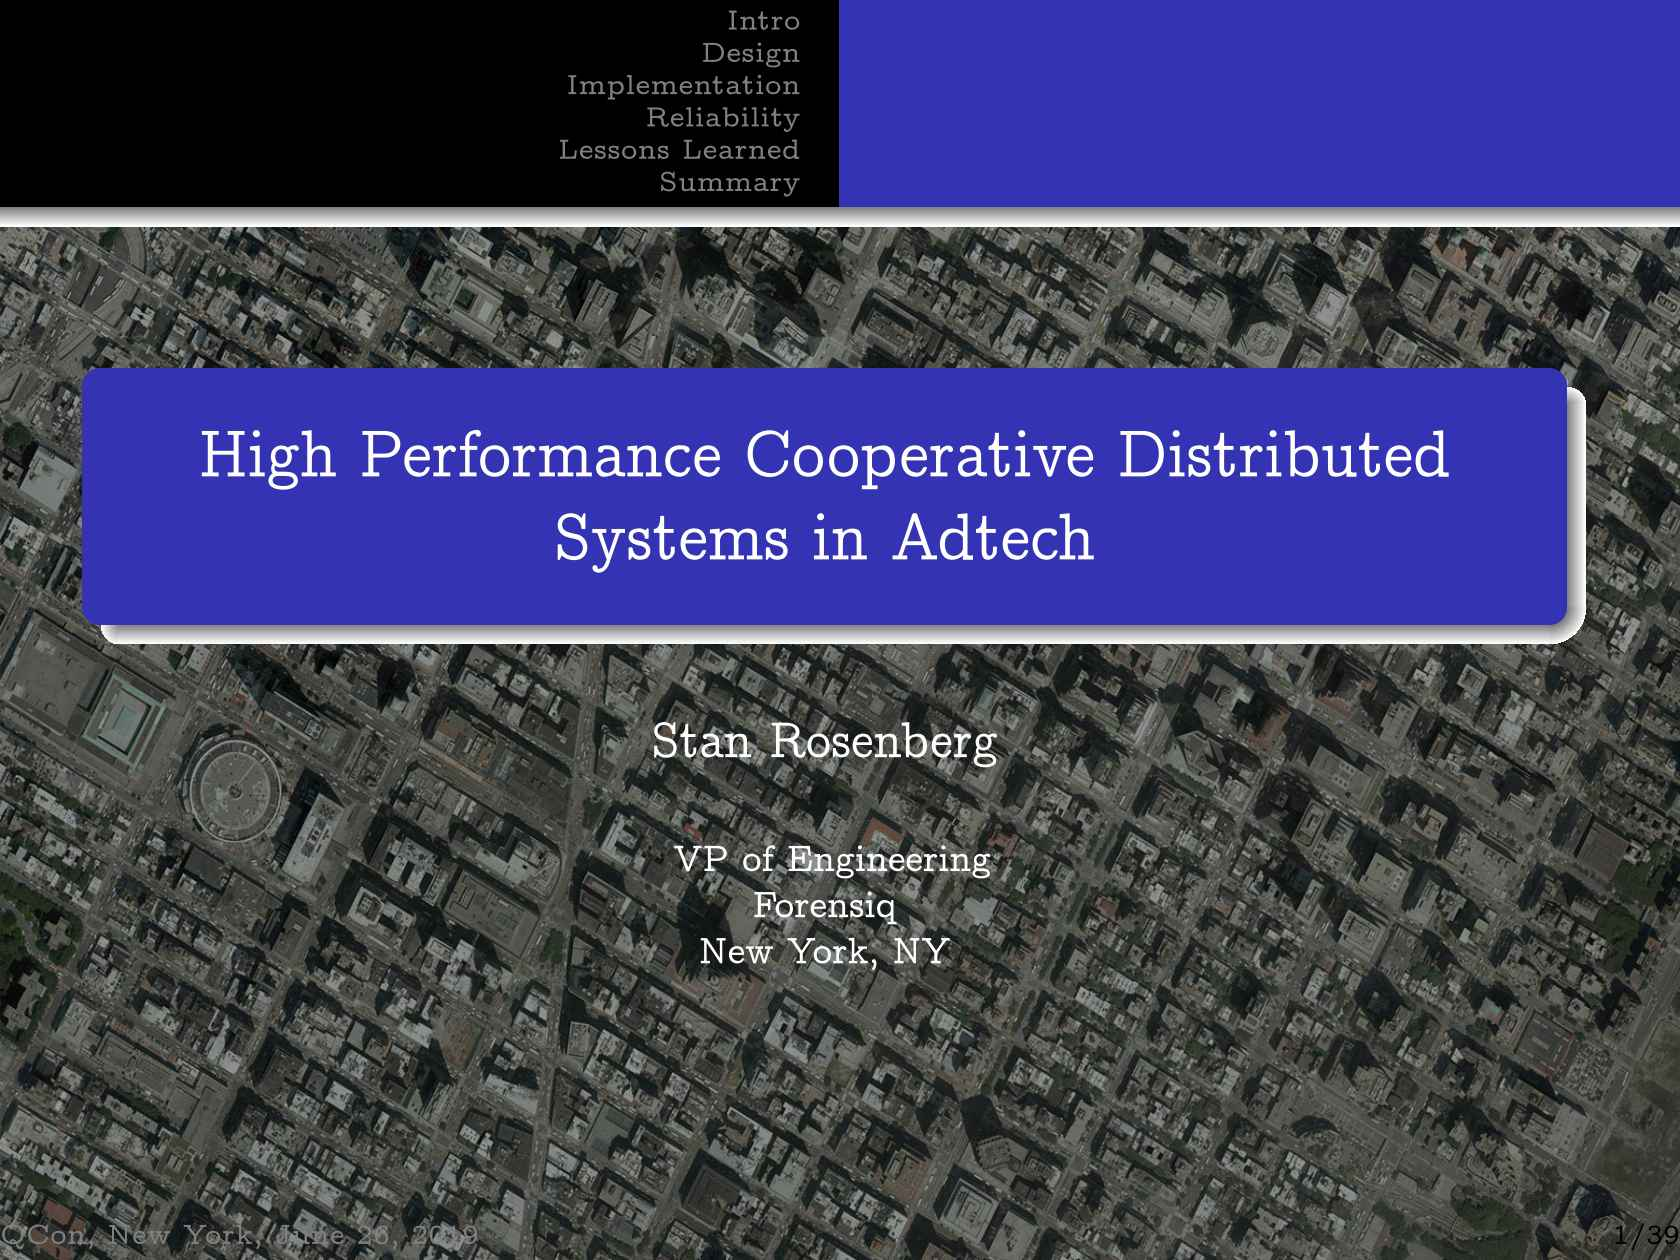 High Performance Cooperative Distributed Systems In Adtech